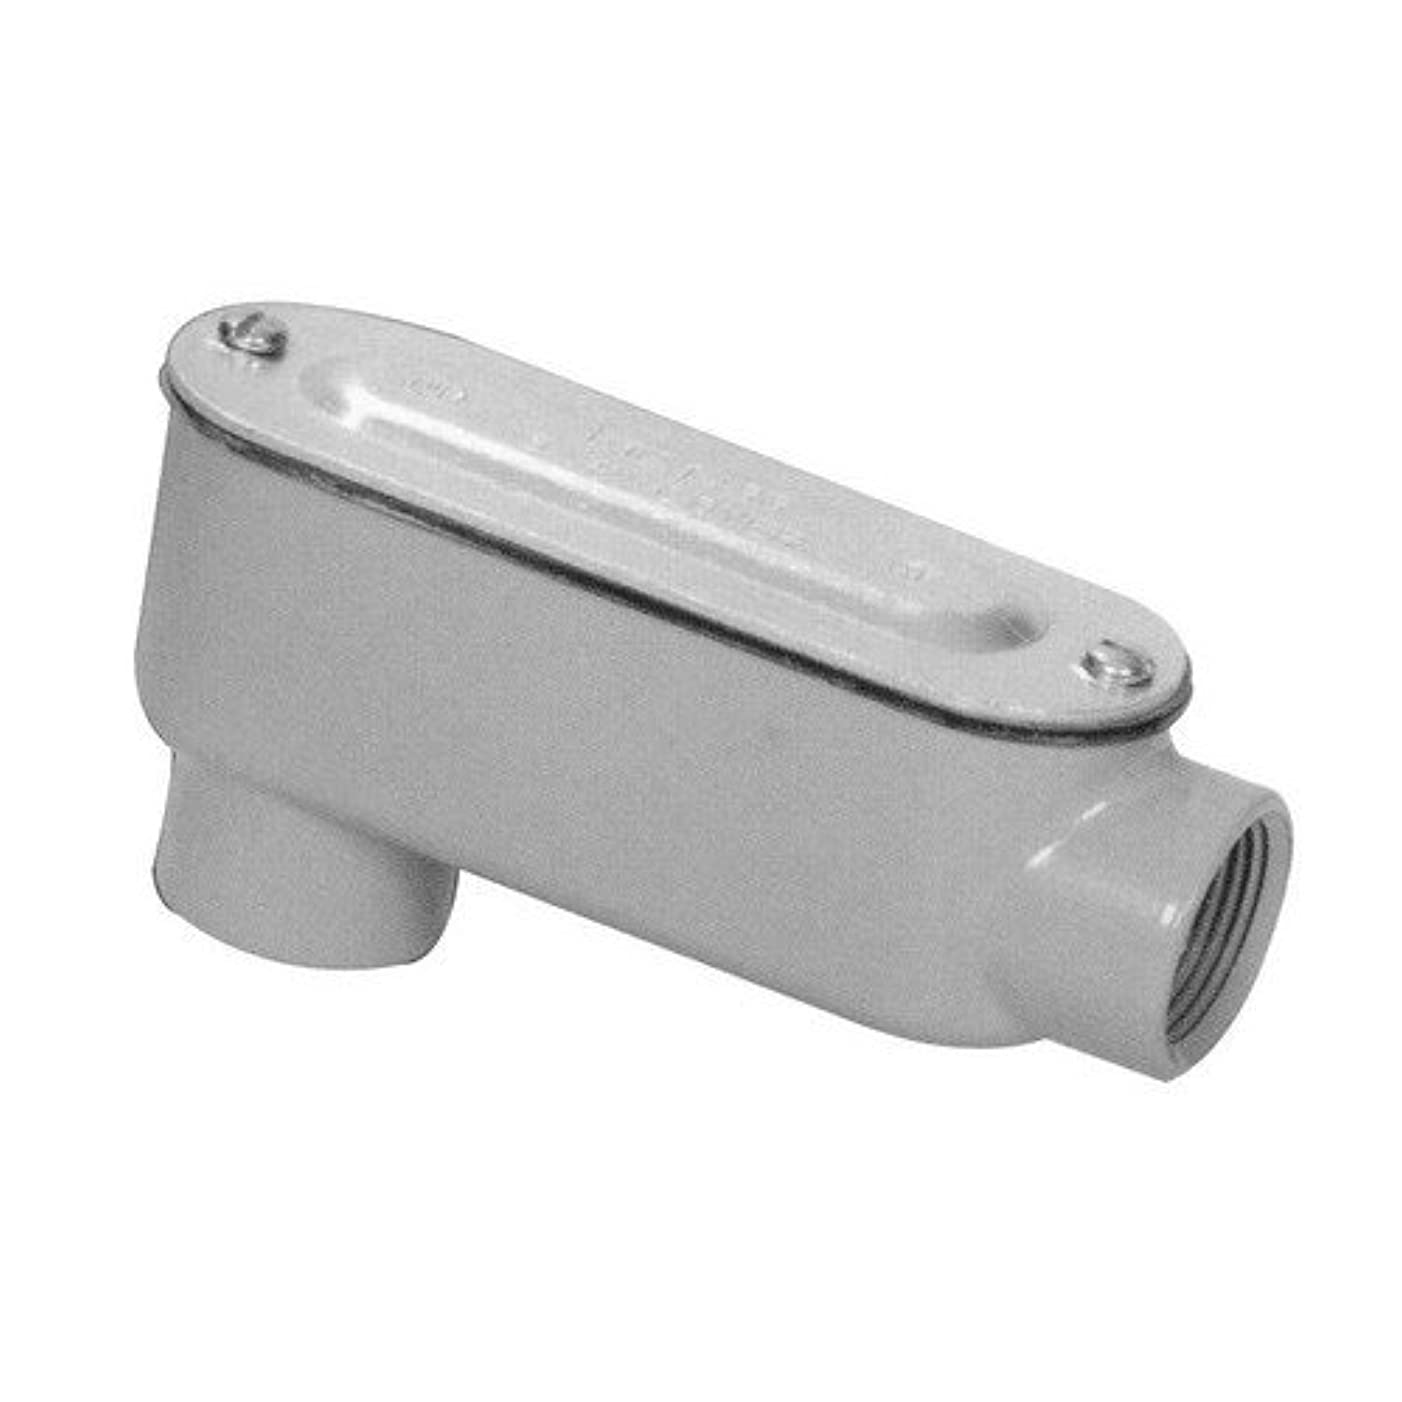 Morris 14056 Rigid Conduit Body, Aluminum, Type LB, Threaded with Cover and Gasket, 2-1/2